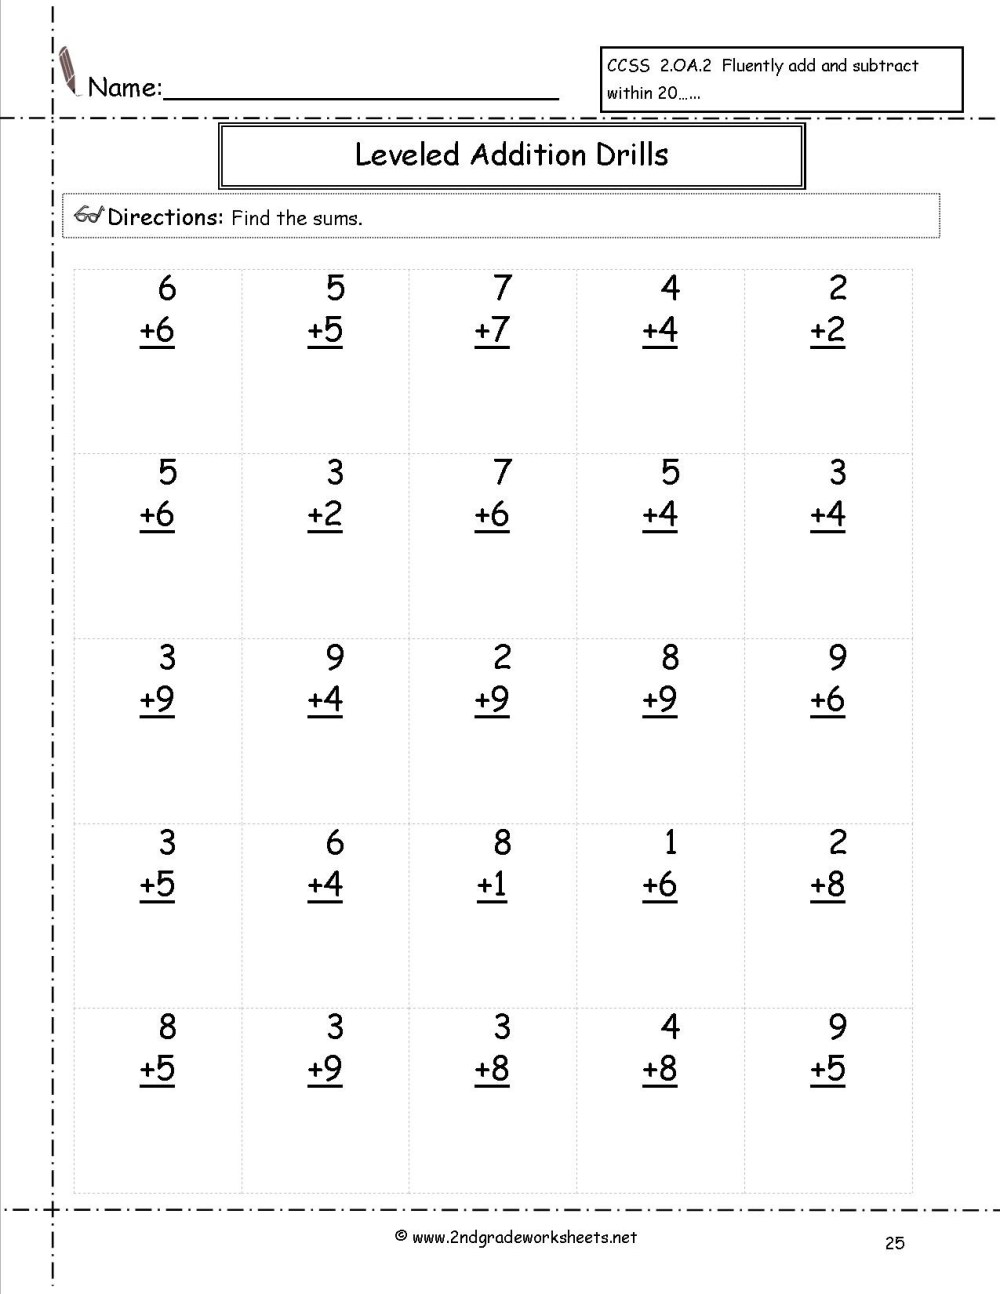 medium resolution of Equal Parts Worksheet 2nd Grade   Printable Worksheets and Activities for  Teachers